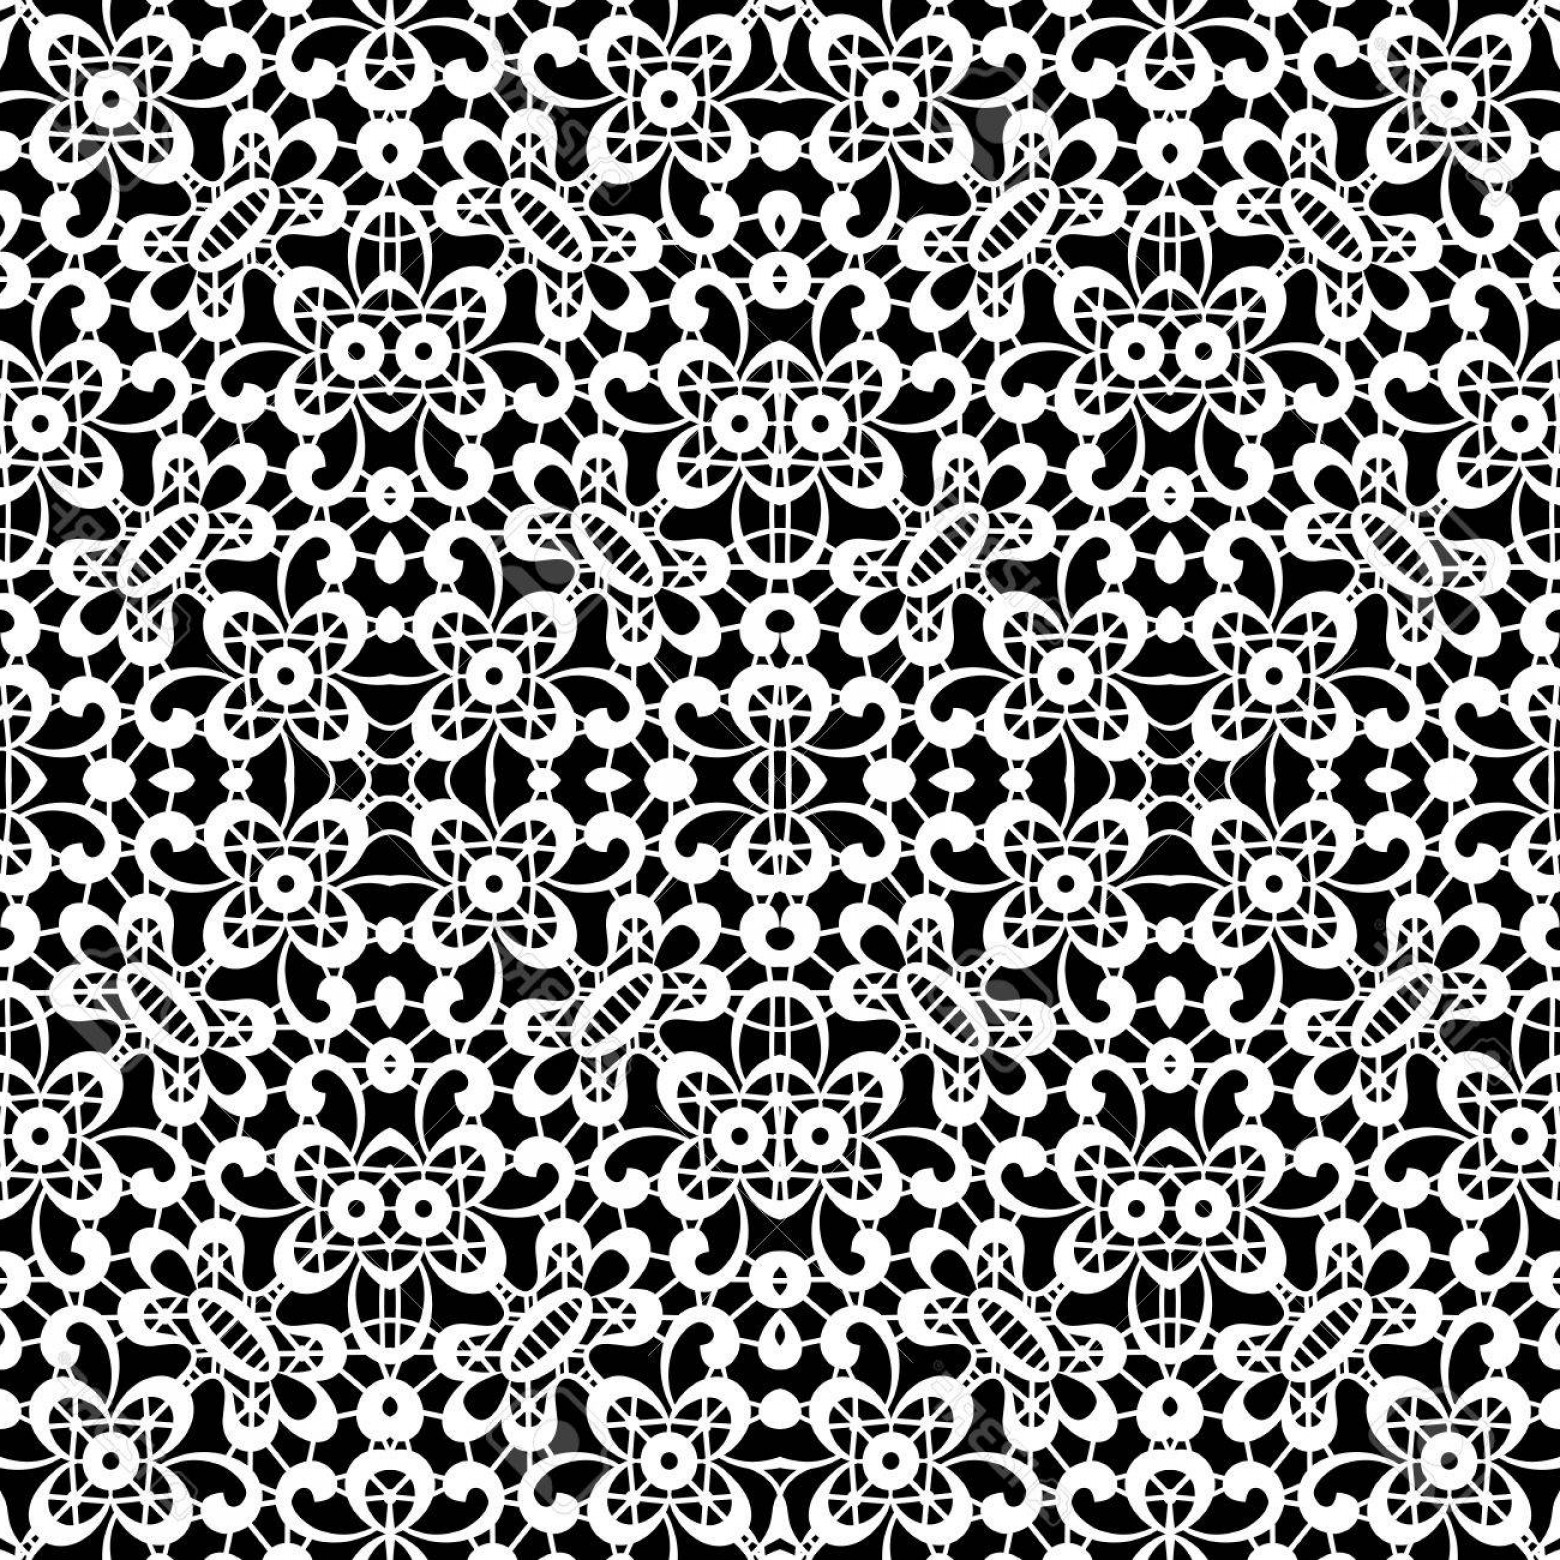 Tulle Black Lace Pattern Vector: Photostock Vector Black And White Lace Texture Seamless Tulle Pattern